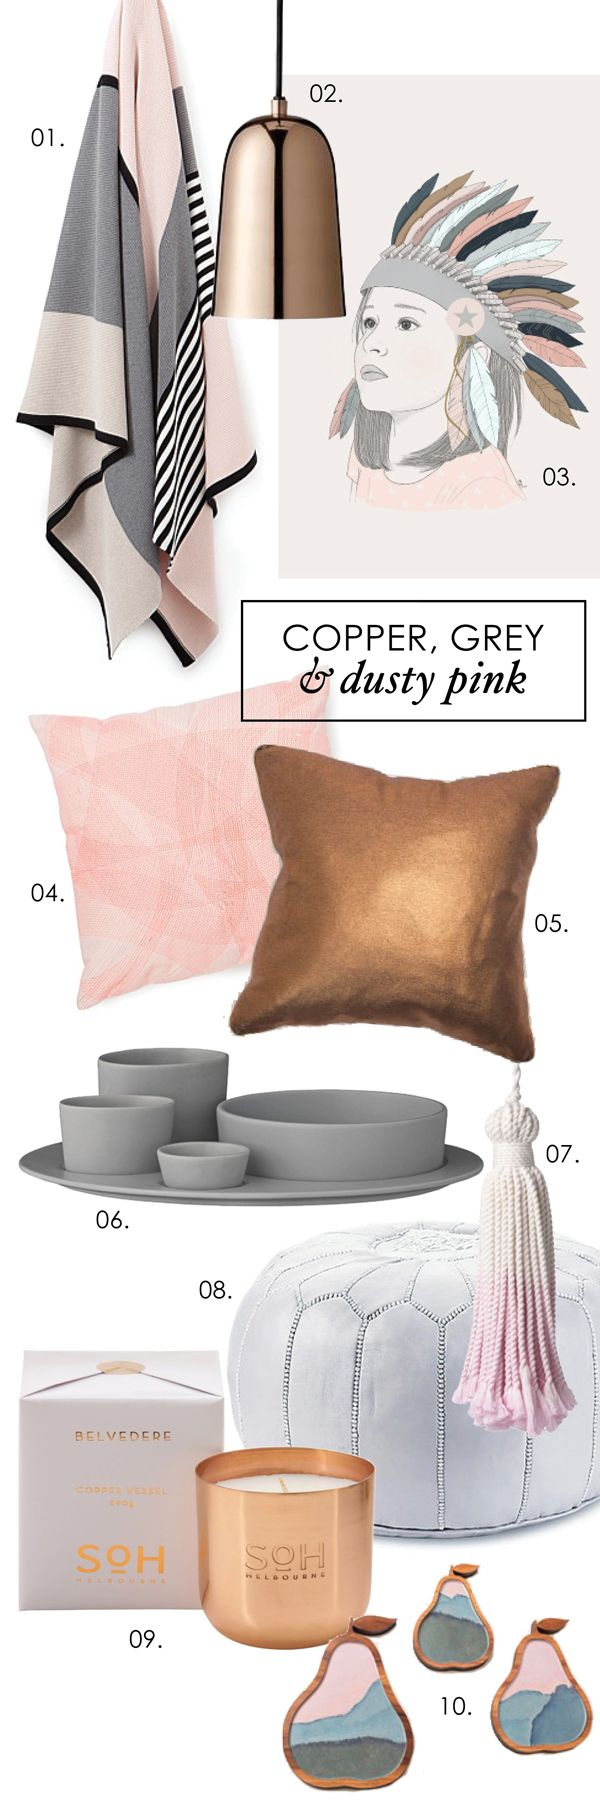 Adore Home magazine - Blog - Copper, grey and dusty pinks Plate and Bowl Set + Copper Candle available from ElvaHem.com